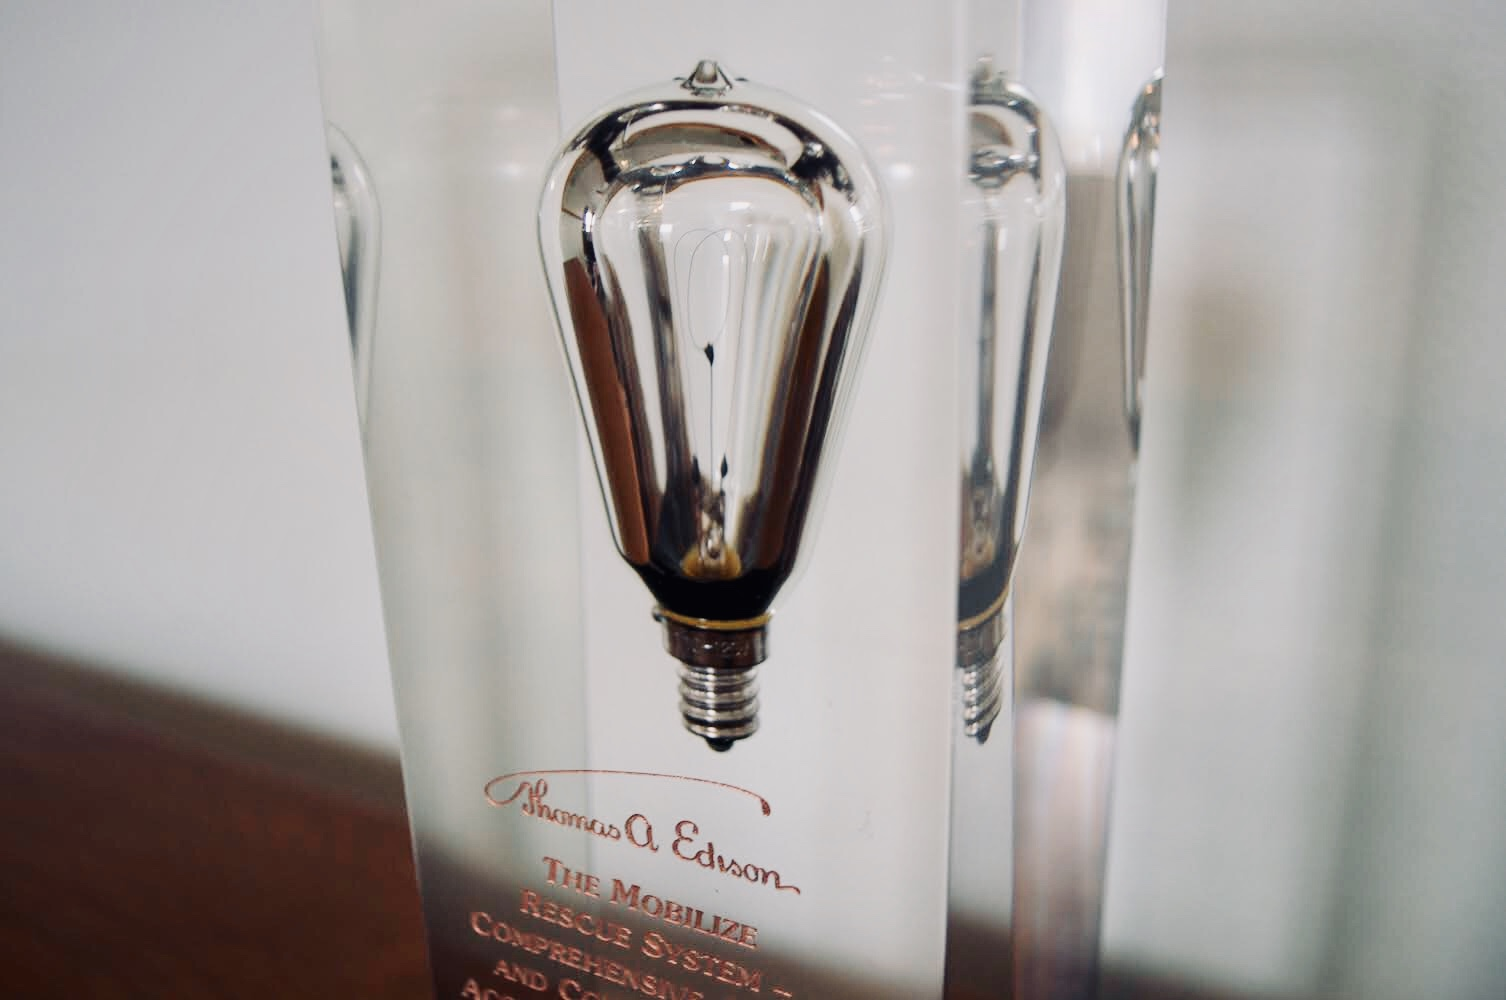 Mobilize Rescue Systems Wins the Bronze Medical Innovation Award at the 2018 Edison Awards